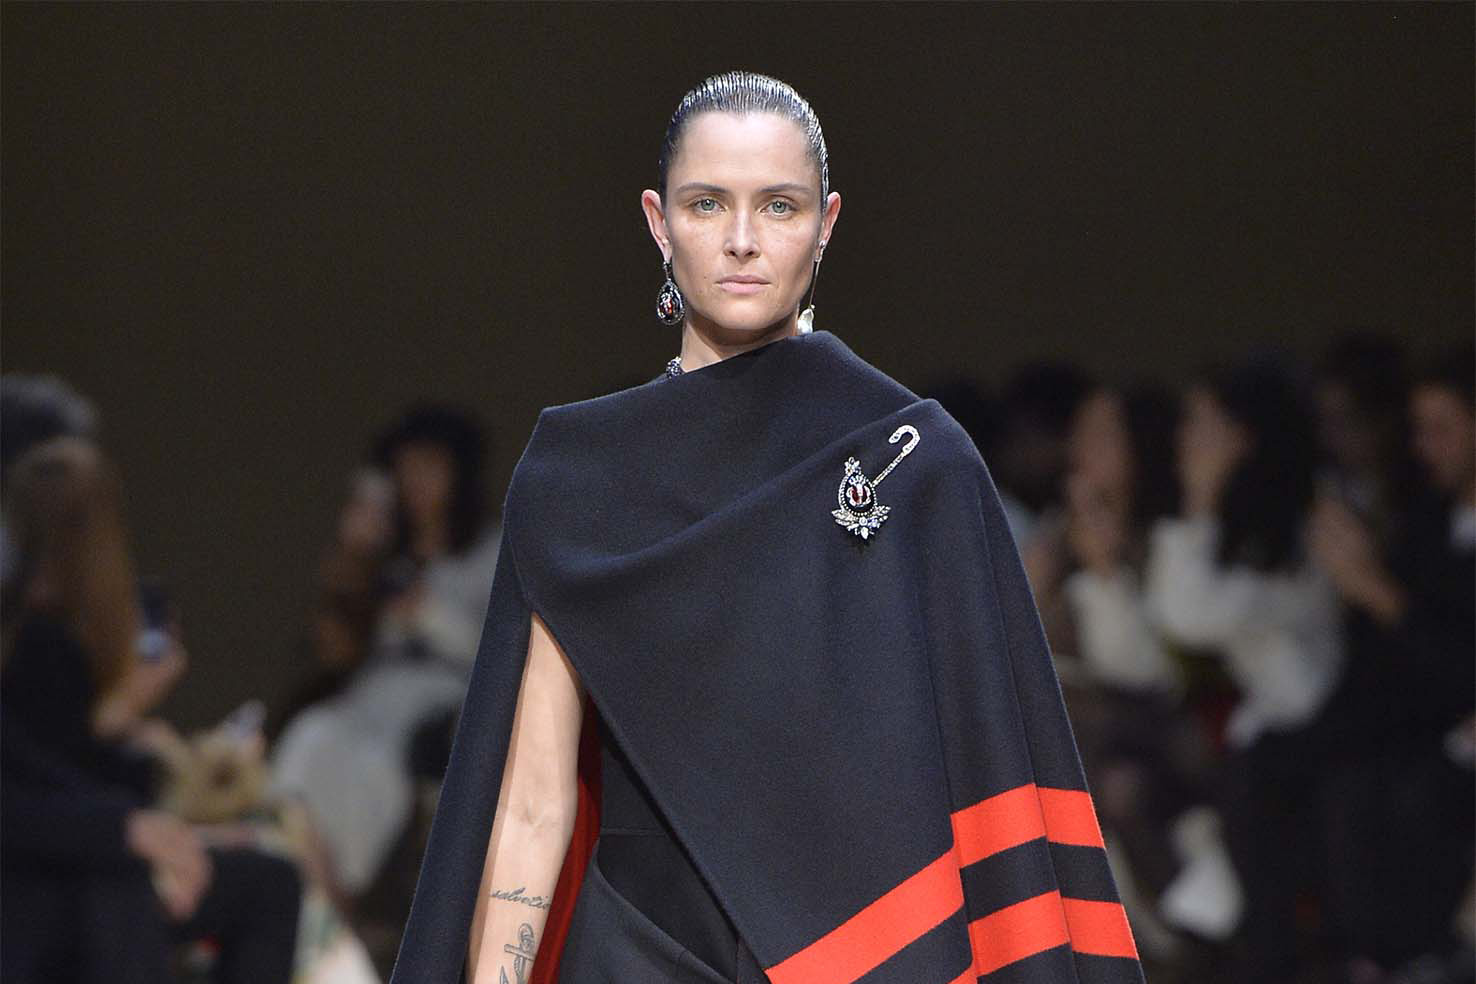 Blanket Capes, Bottega Veneta, Chanel, Chloe, Dior, Fashion, Featured, Fendi, Online Exclusive, Style, Trends